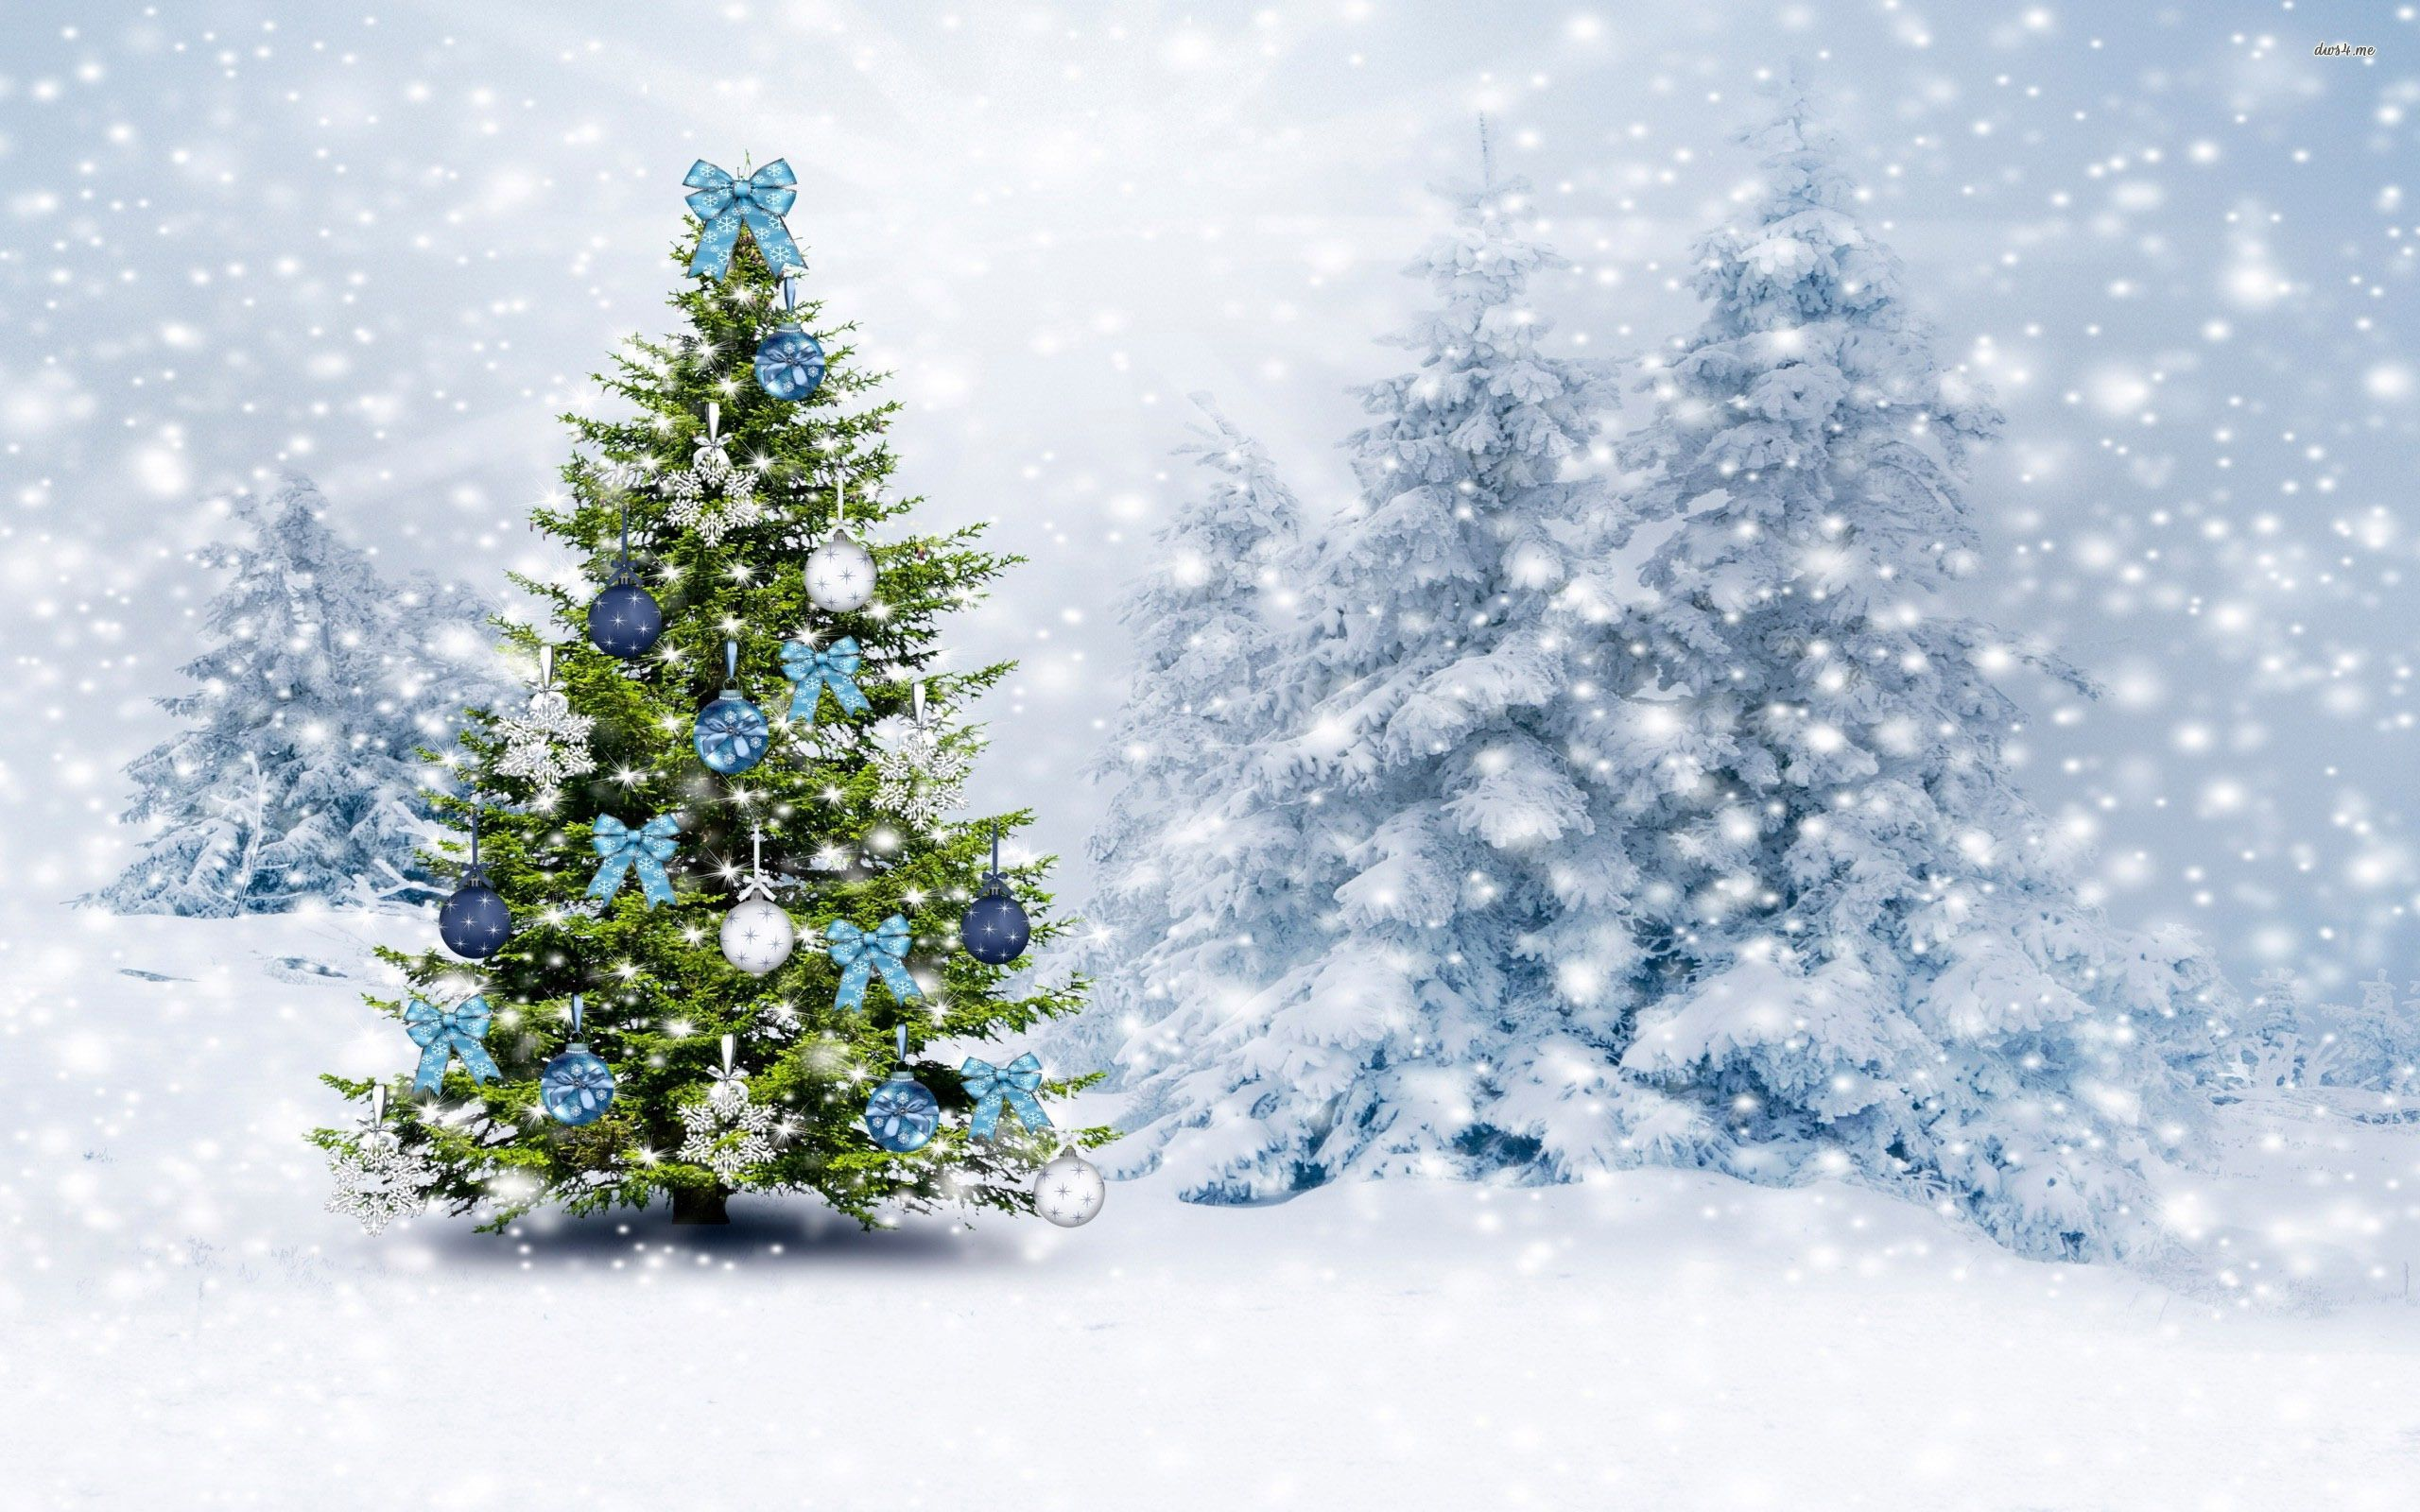 Christmas Tree In The Snowy Forest Hd Wallpaper Christmas Tree Wallpaper Christmas Tree Background Christmas Tree Photography